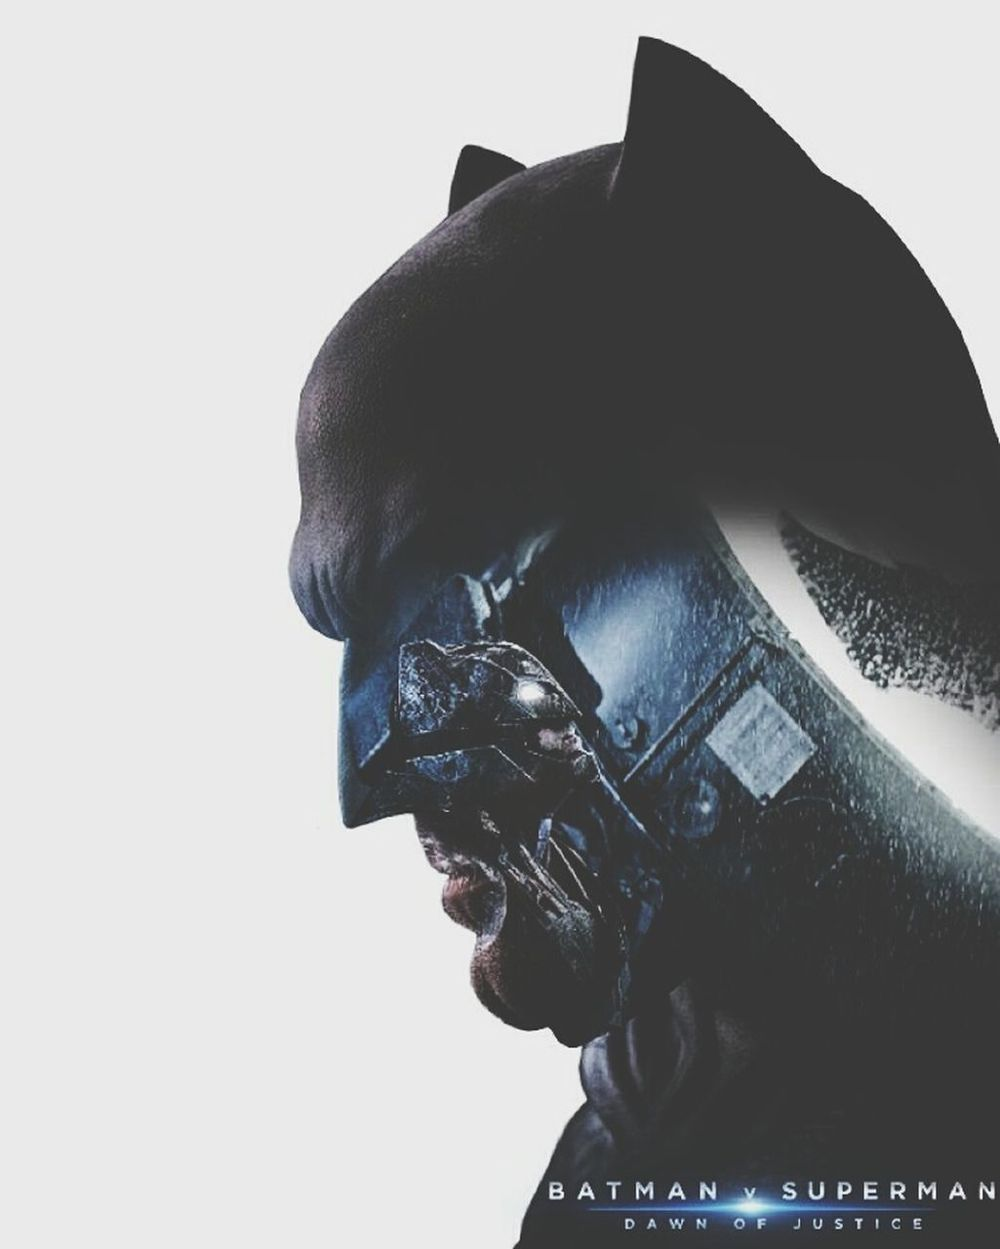 Batmanvssuperman Remembers Batman Check This Out Dayvsnight Theredcapesarecoming